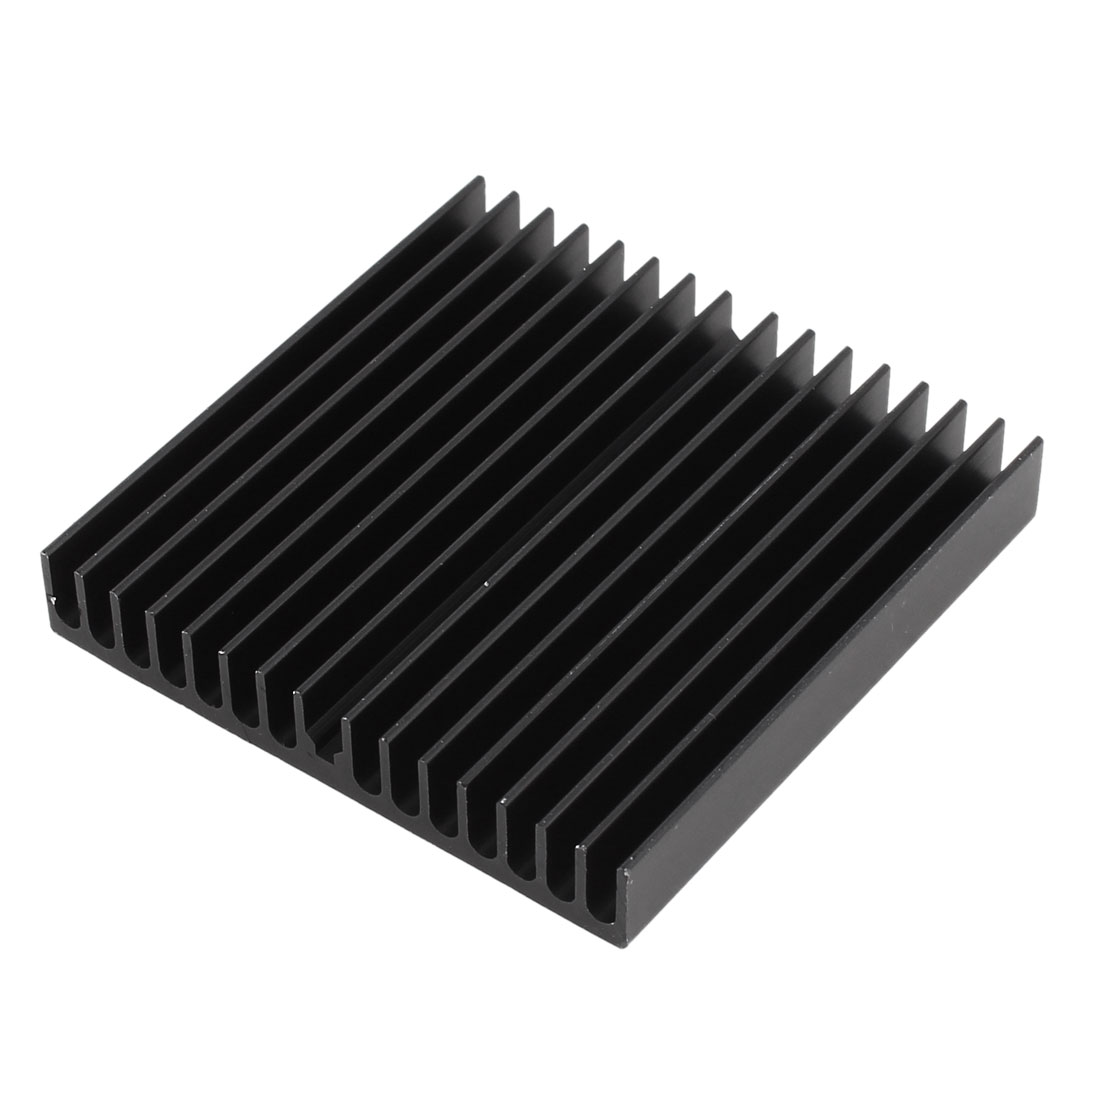 Black Aluminum Radiator Heat Sink Heatsink 60mm x 60mm x 10mm